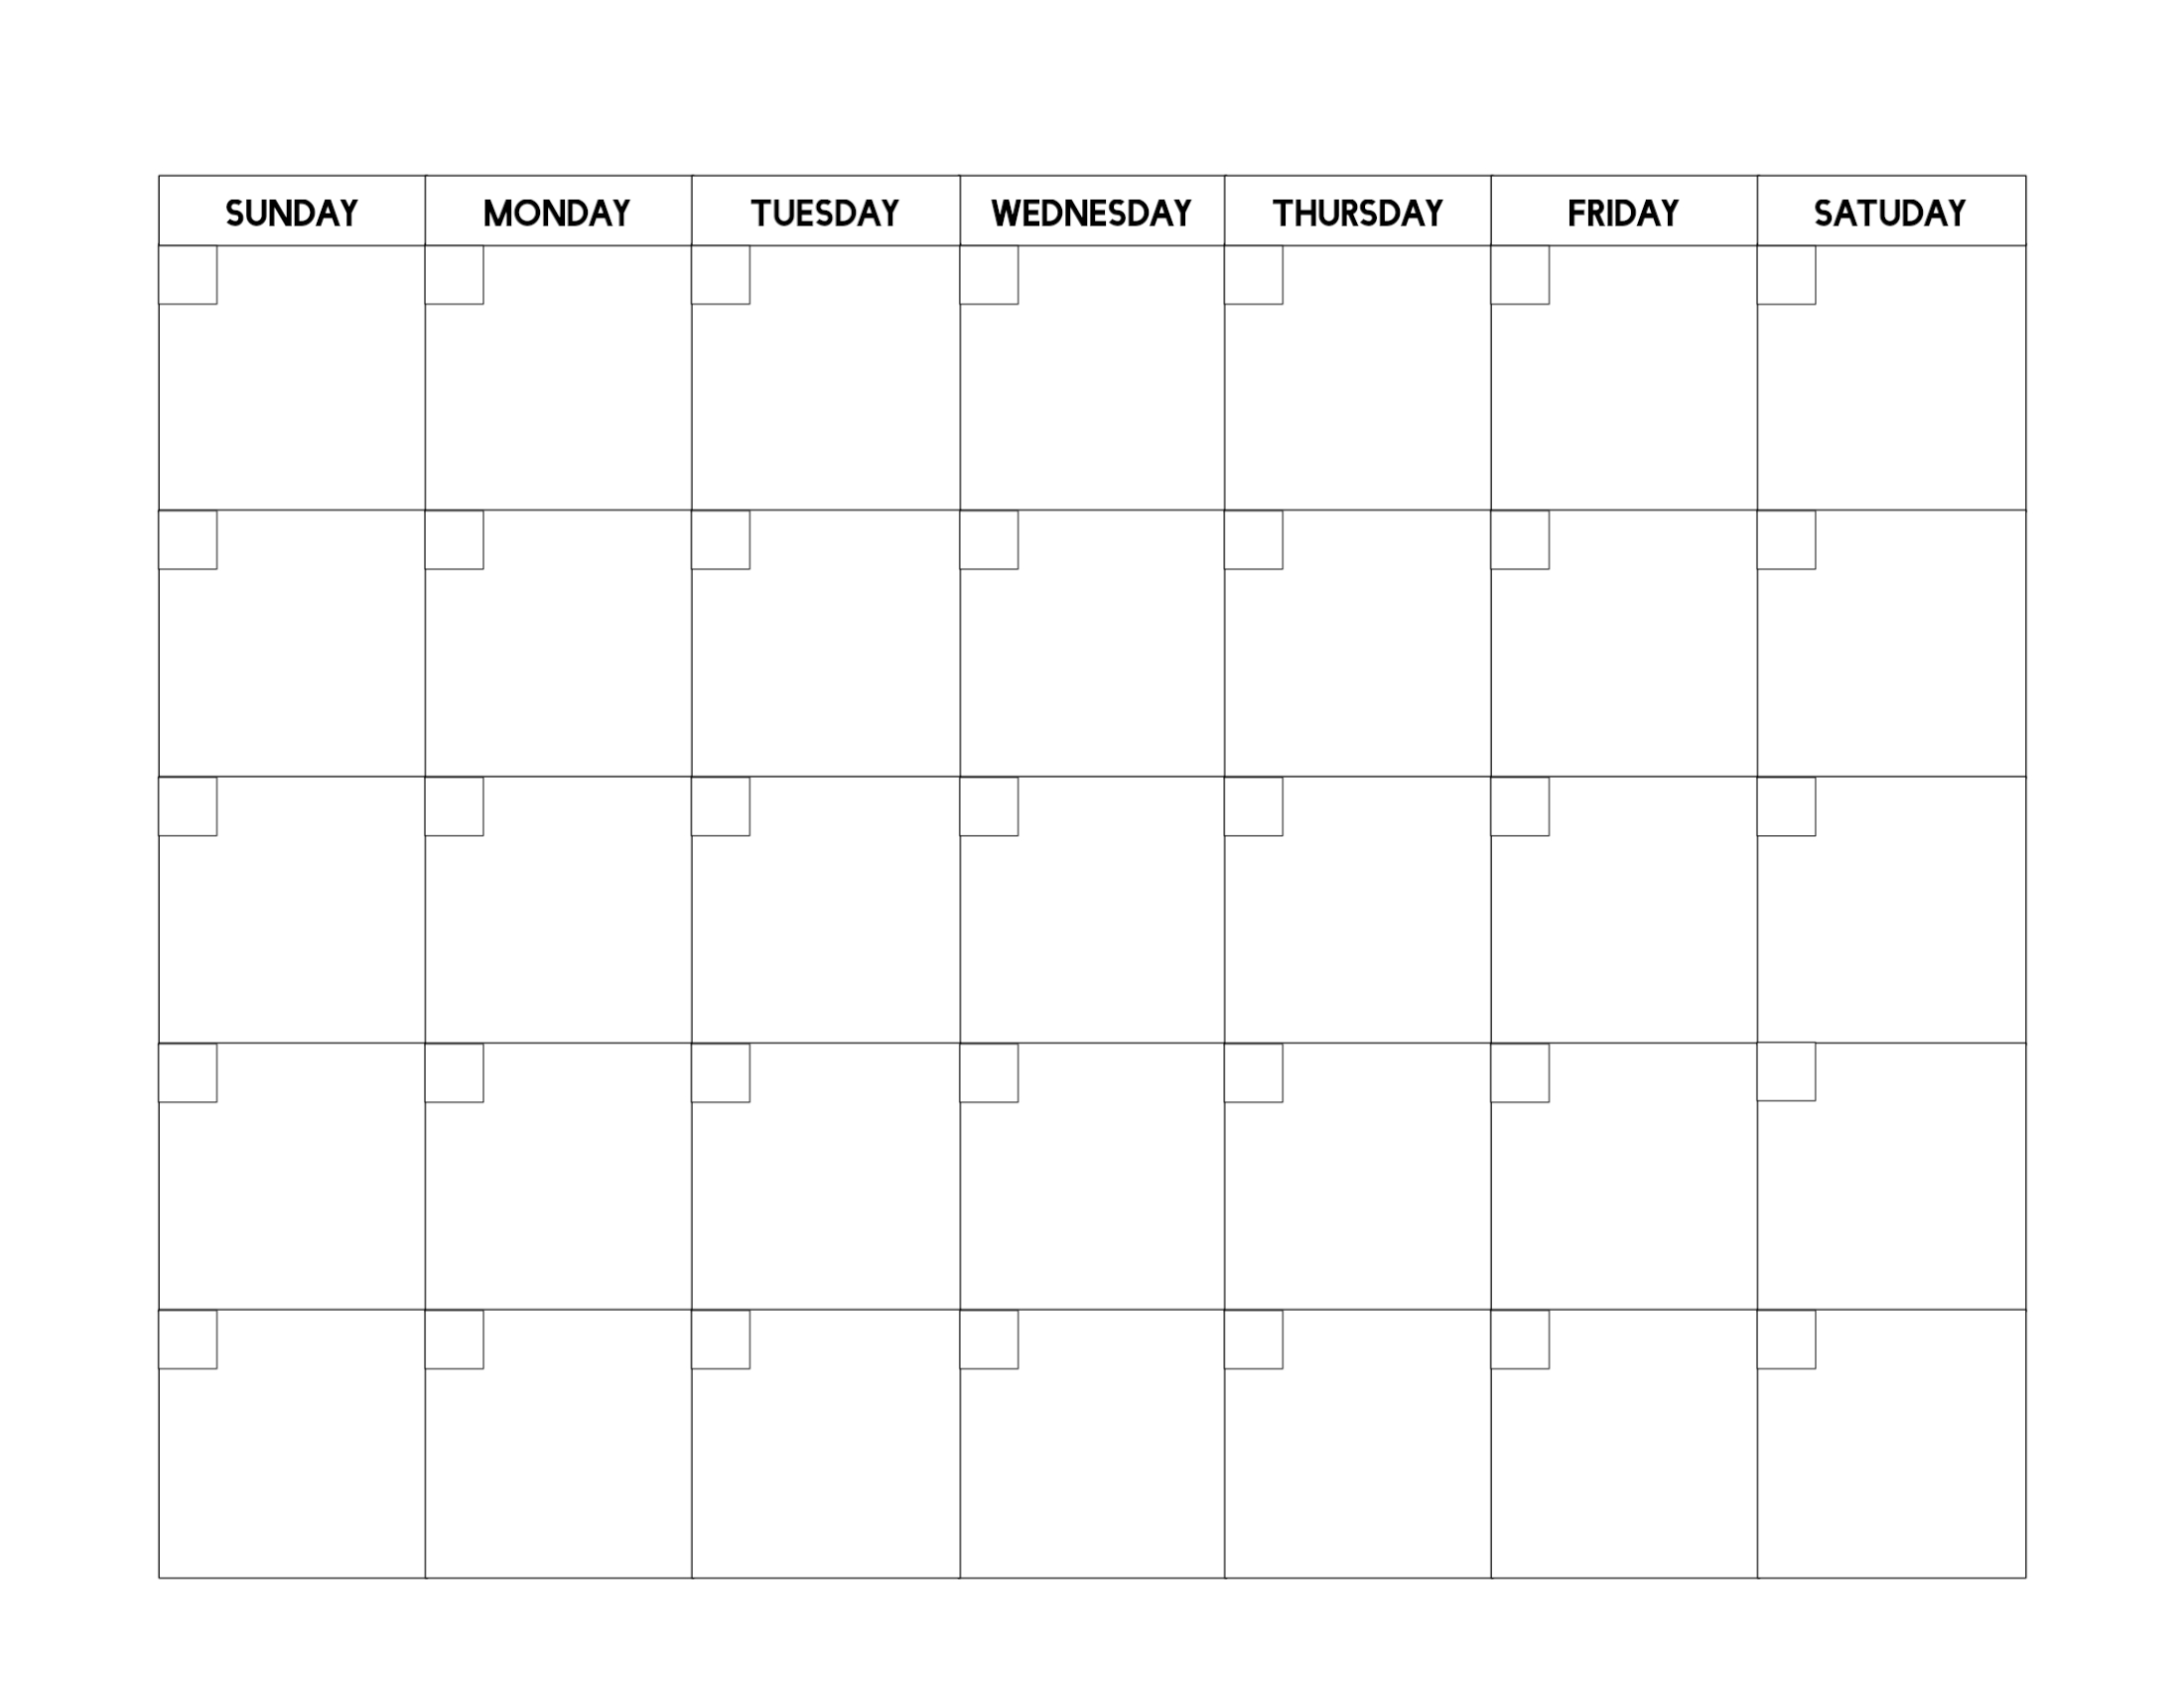 Free Printable Blank Calendar Template - Paper Trail Design Blank Calendar To Fill In